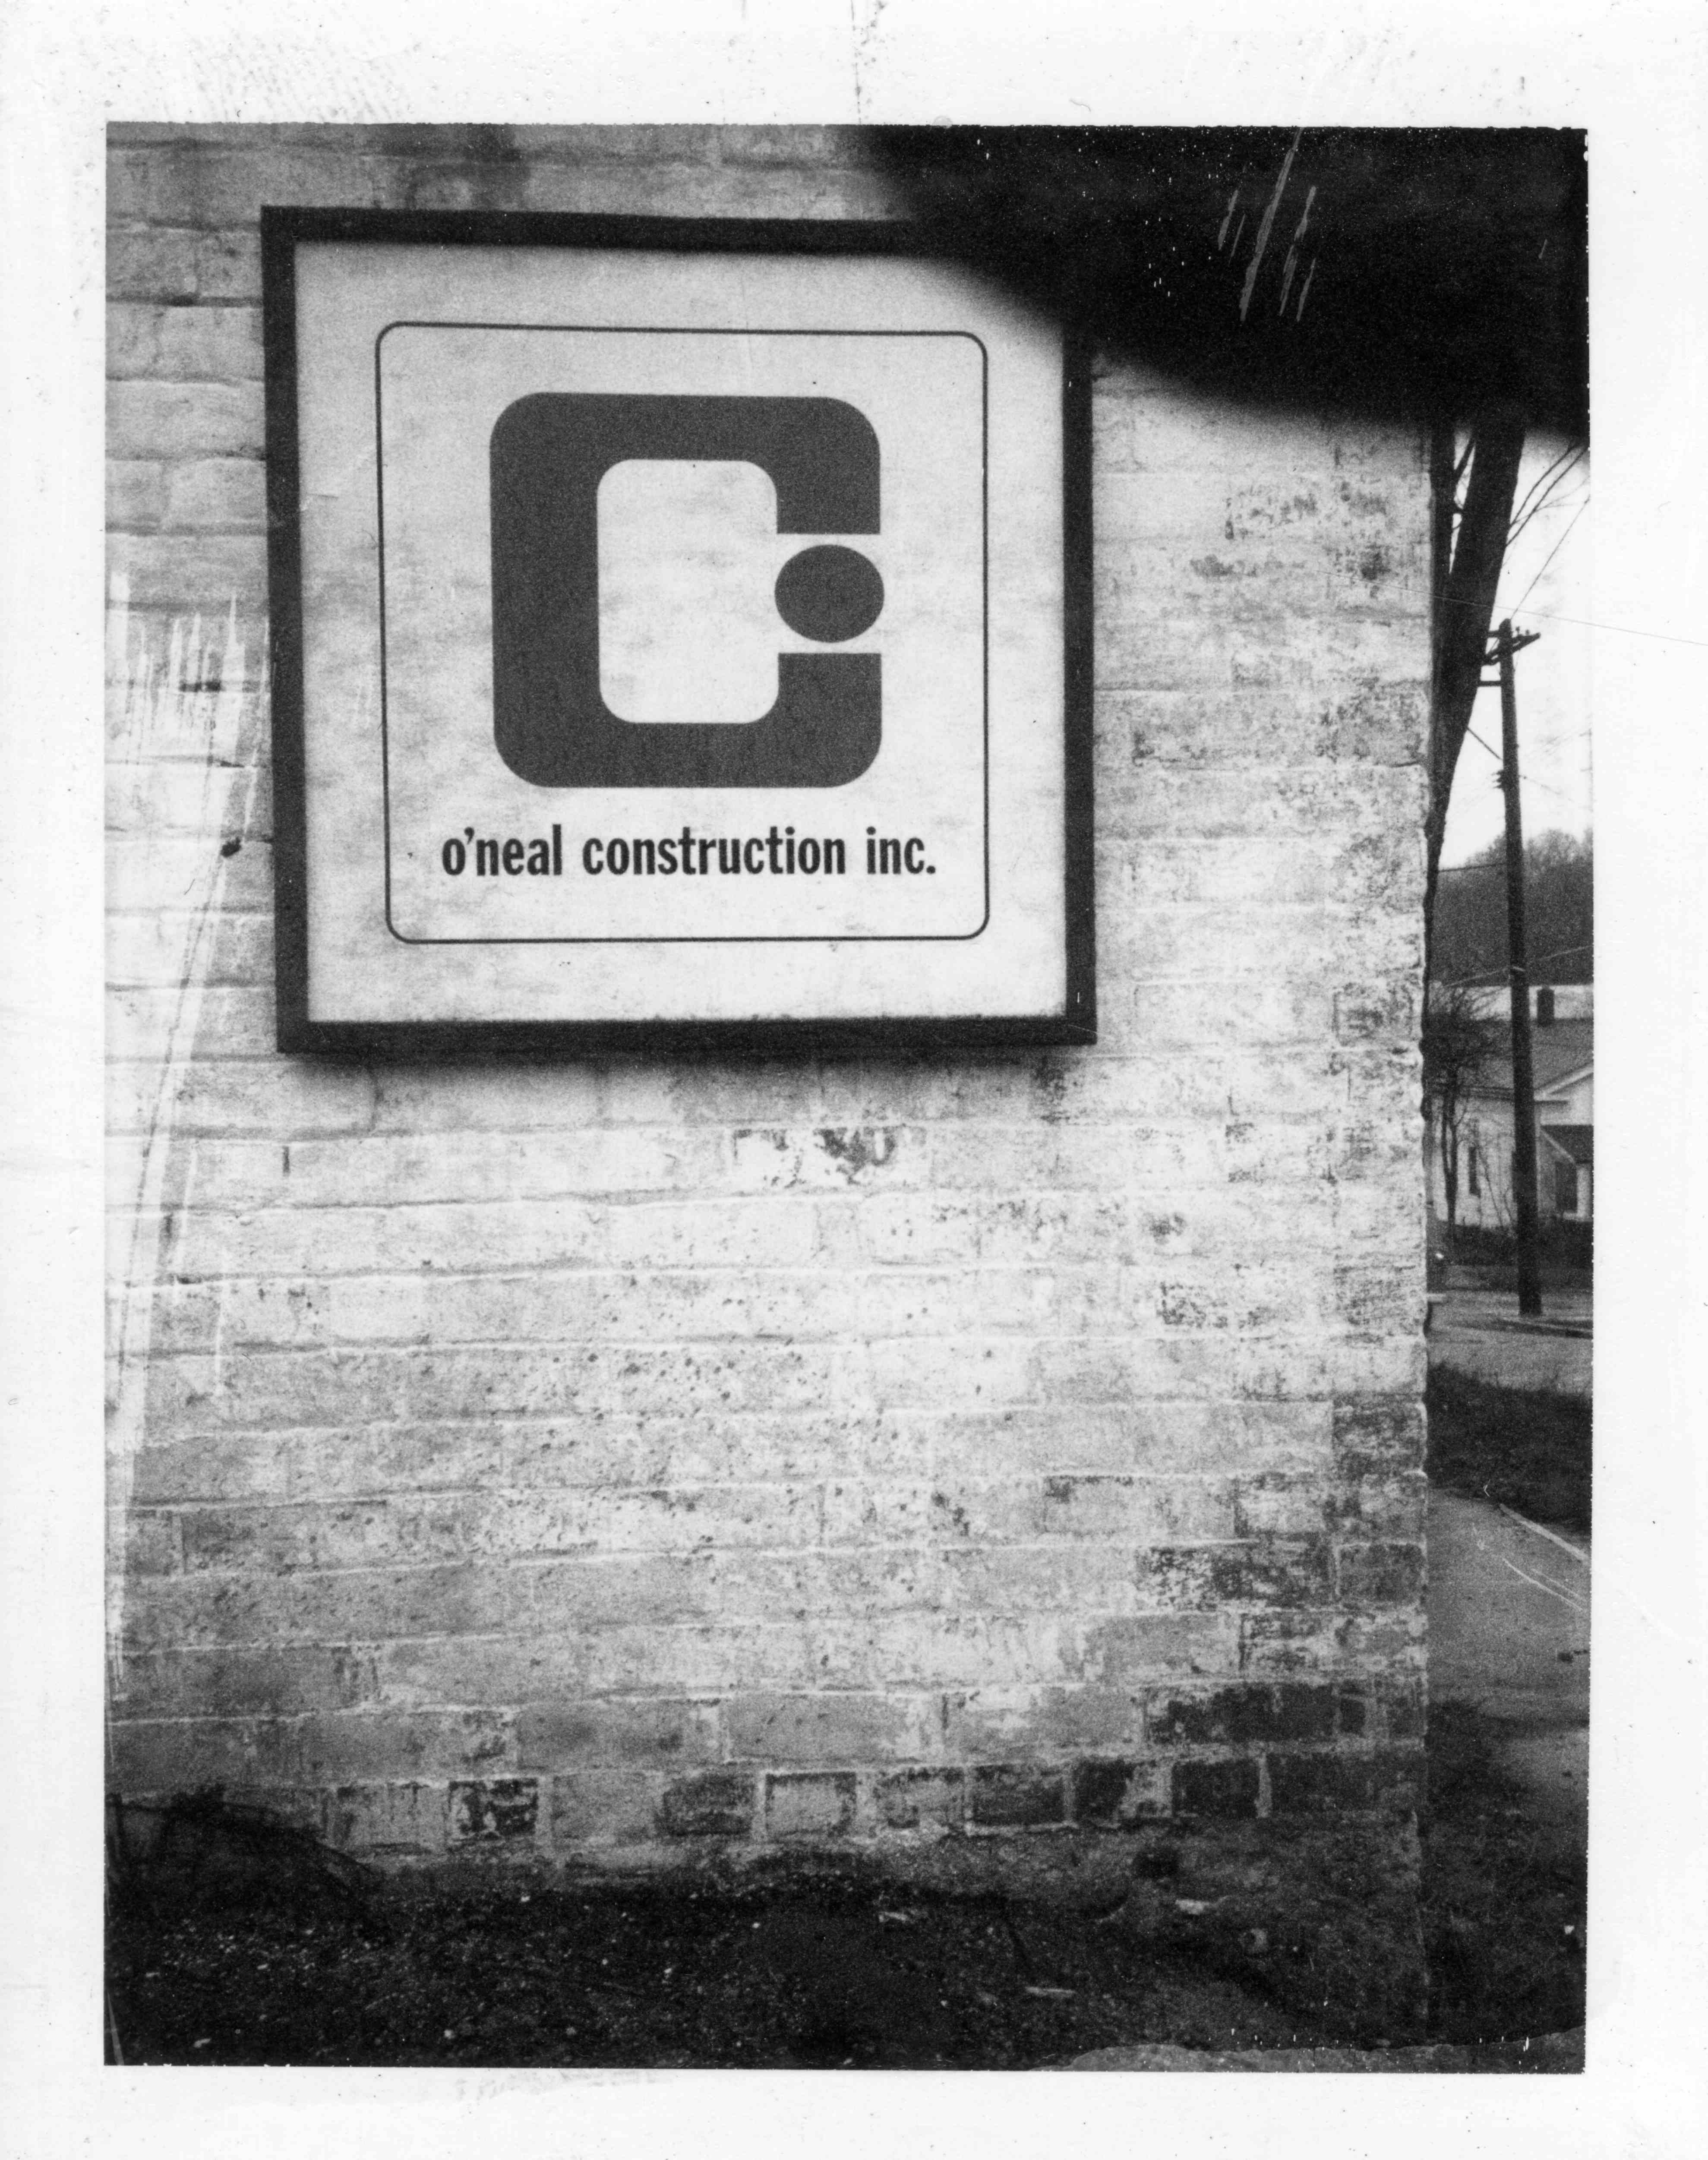 O'Neal Construction Inc., 1974 image